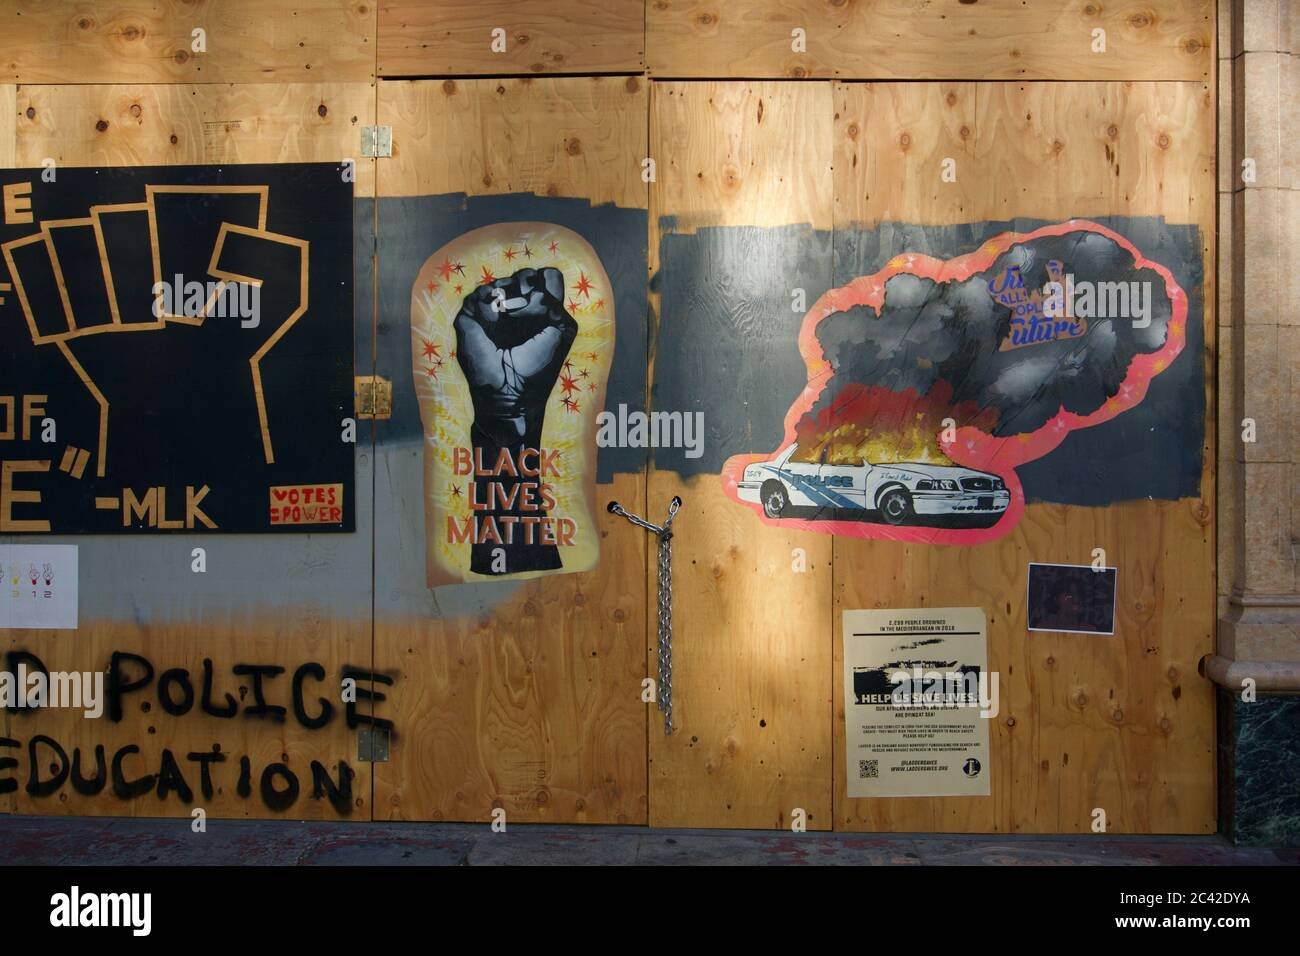 black-lives-matter-protest-street-art-on-boarded-up-buildings-after-the-killing-of-george-floyd-and-subsequent-looting-of-downtown-oakland-2C42DYA.jpg